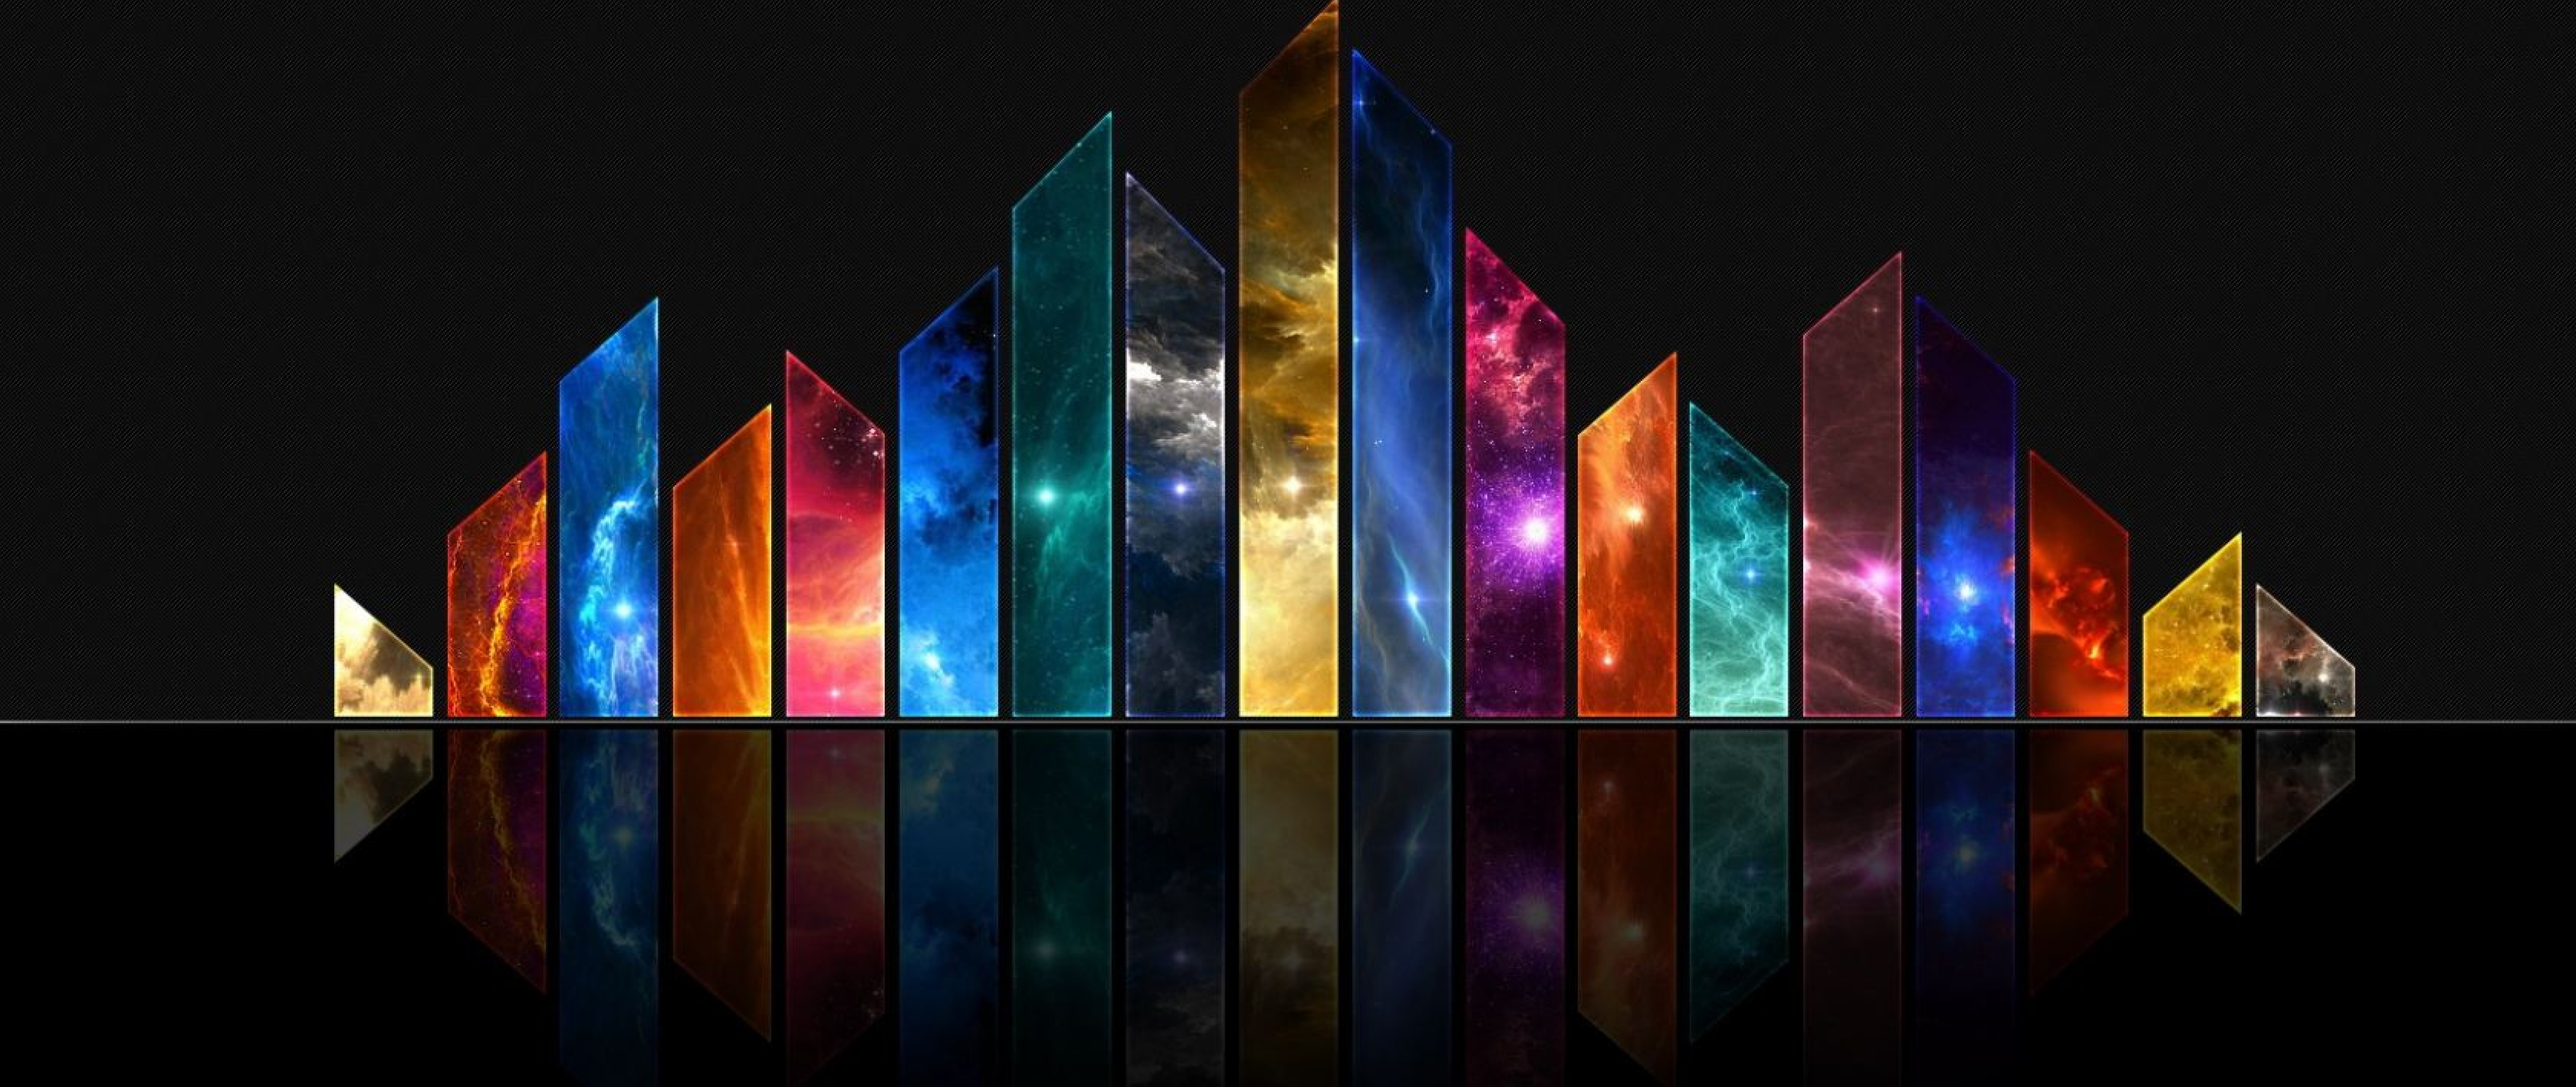 3d Graphic Abstract Wallpaper For Desktop And Mobiles 4k Ultra Hd Wide Tv Hd Wallpaper Wallpapers Net